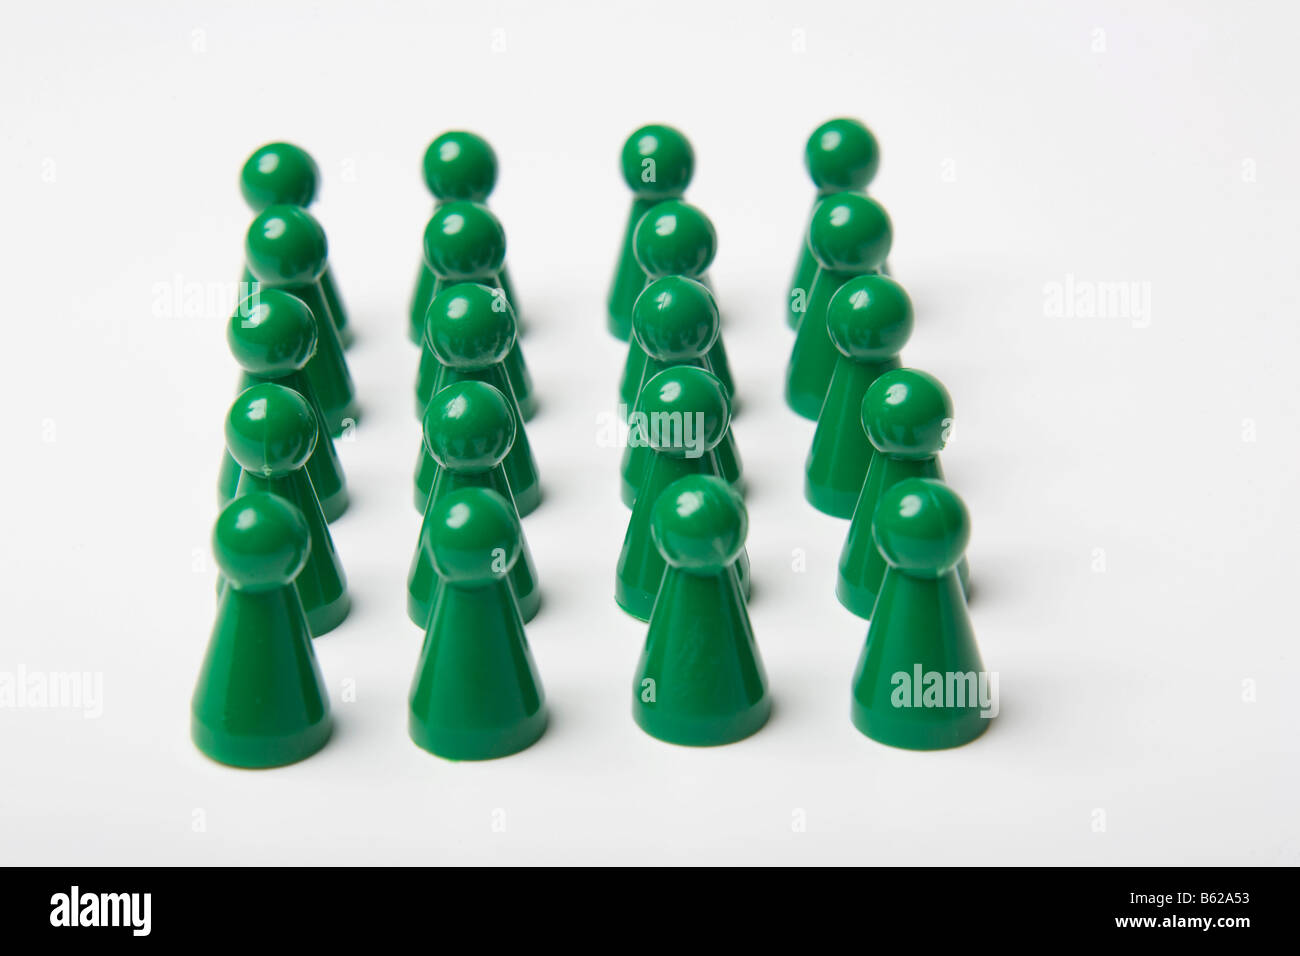 Green gaming pieces standing ordered together, symbolic of in rank and file - Stock Image